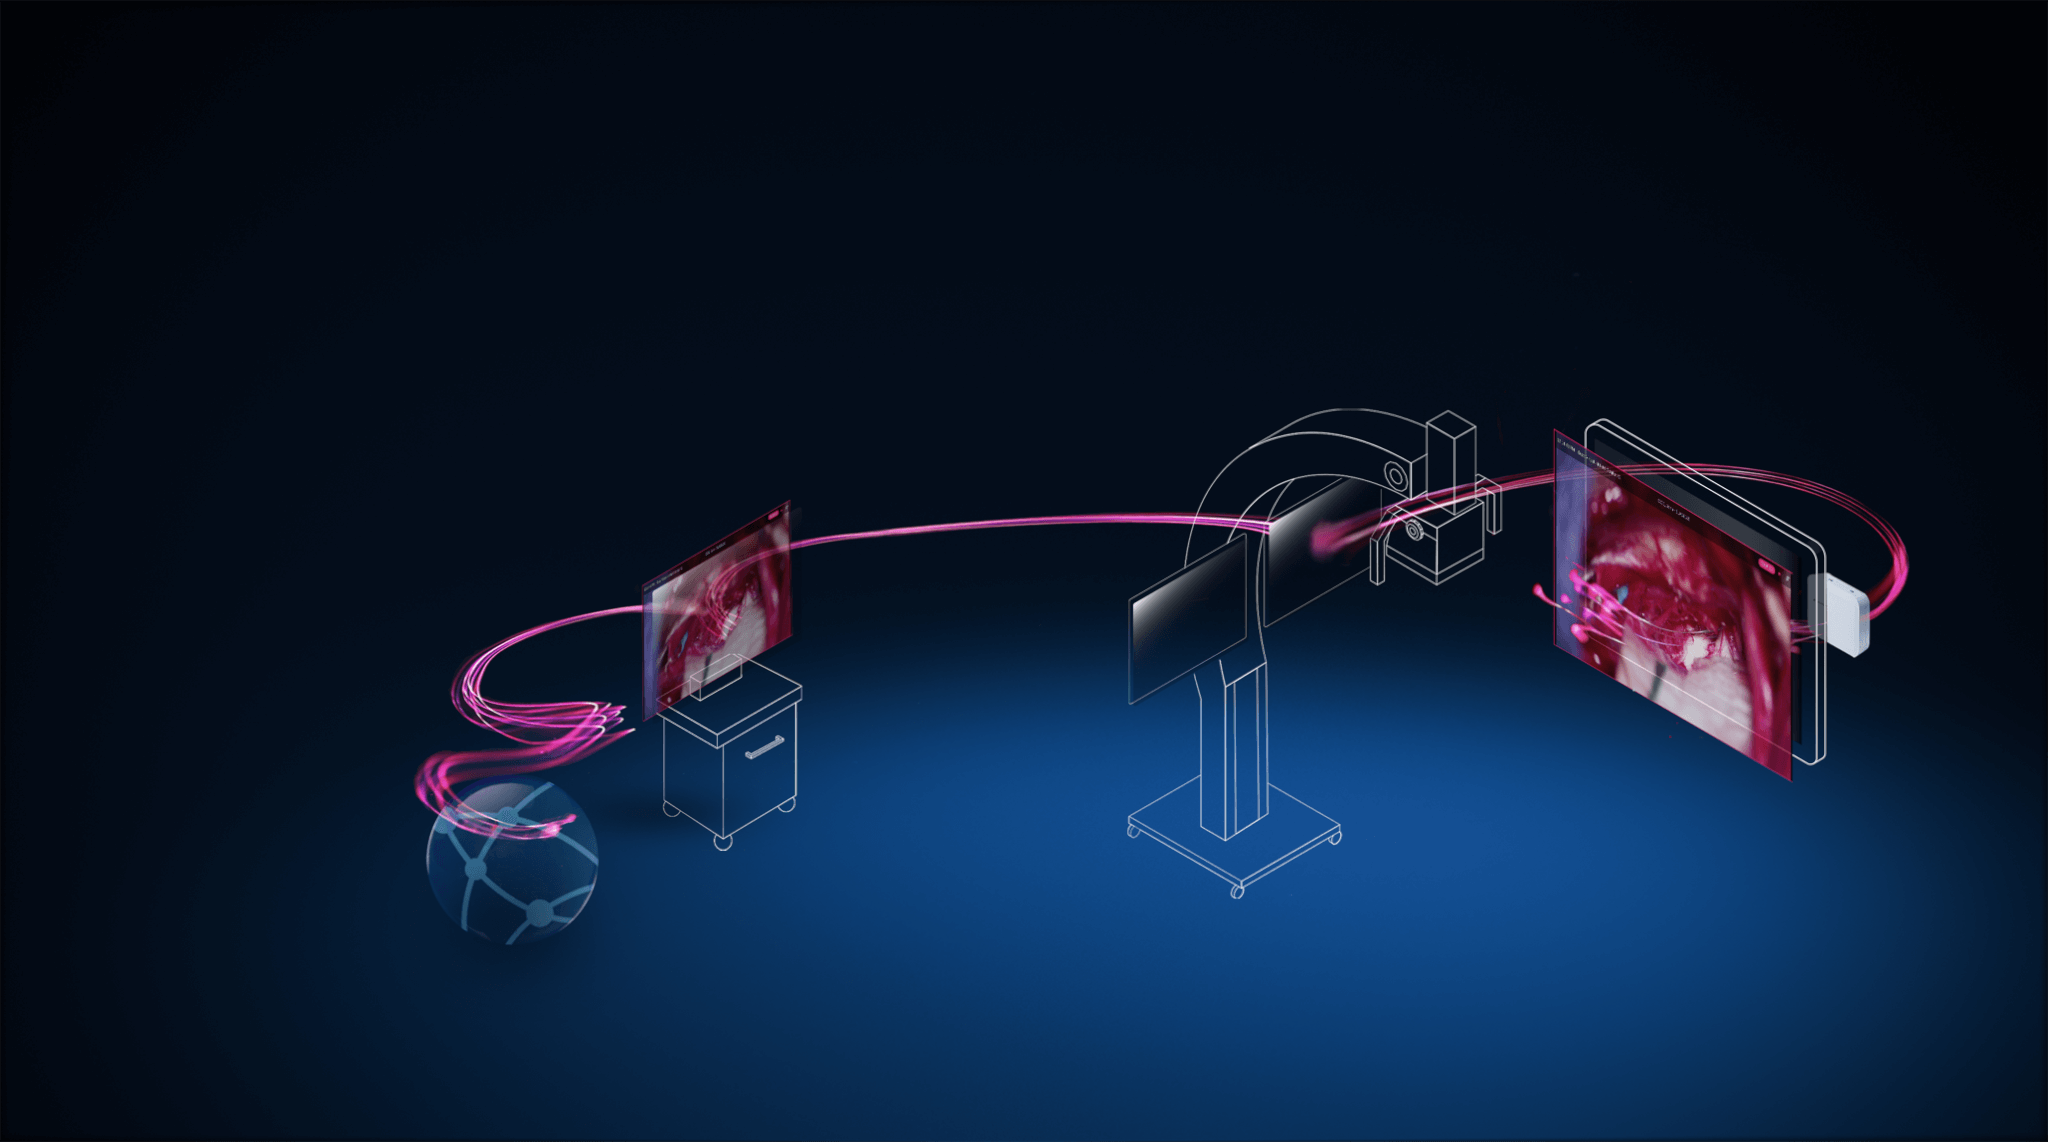 Pink streams travel between a computer rendering of a server icon, an endoscope, a microscope and surgical navigation system indicating integration of these systems.